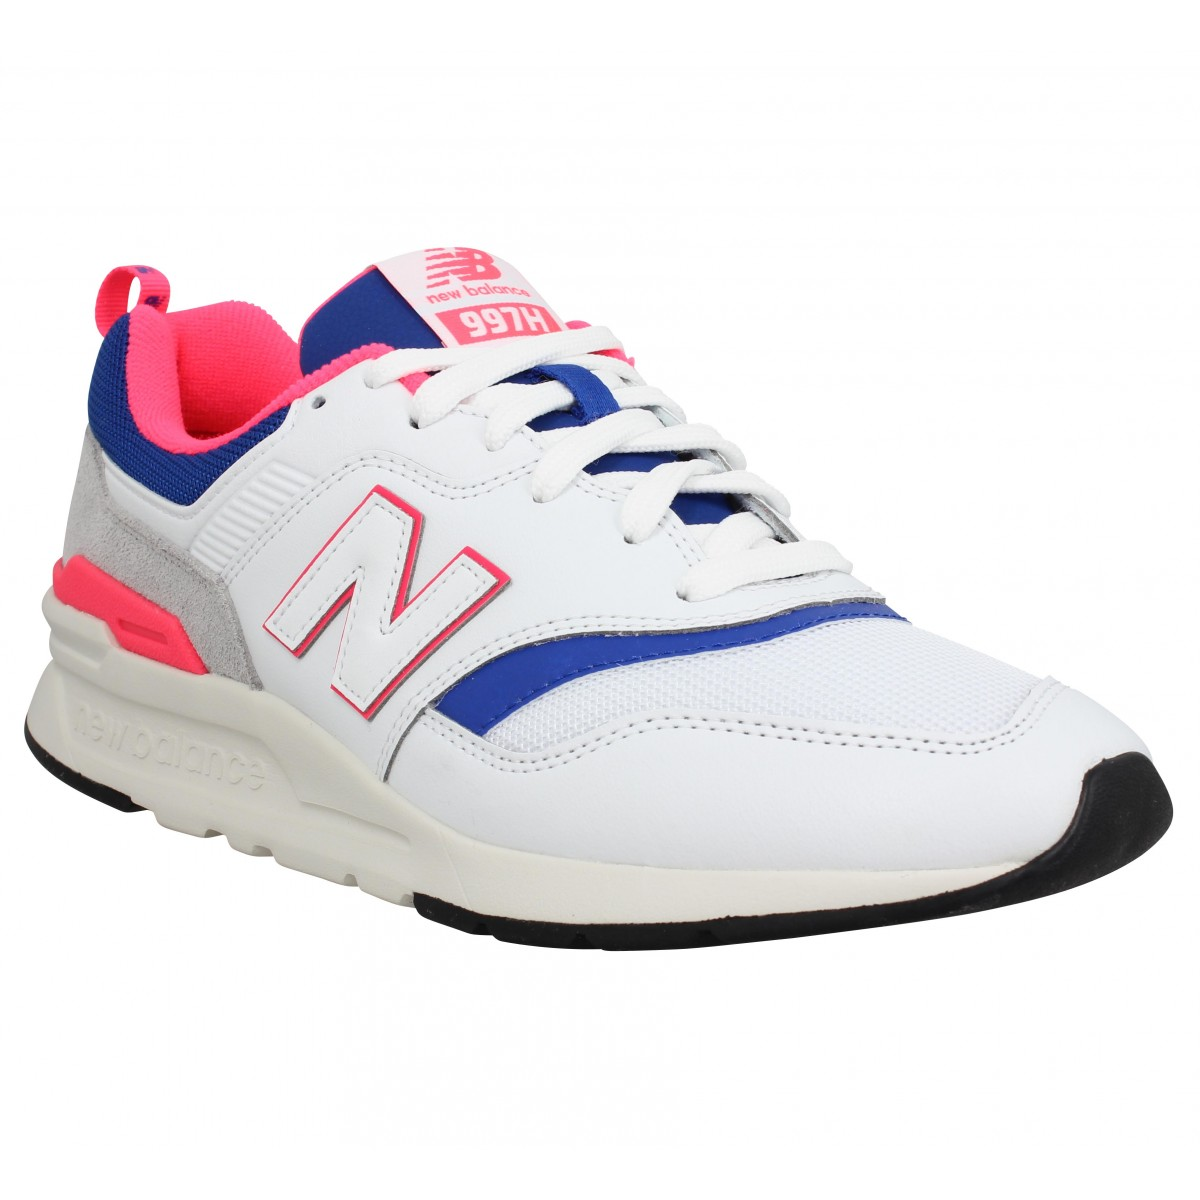 Baskets NEW BALANCE 997 cuir Homme Blanc